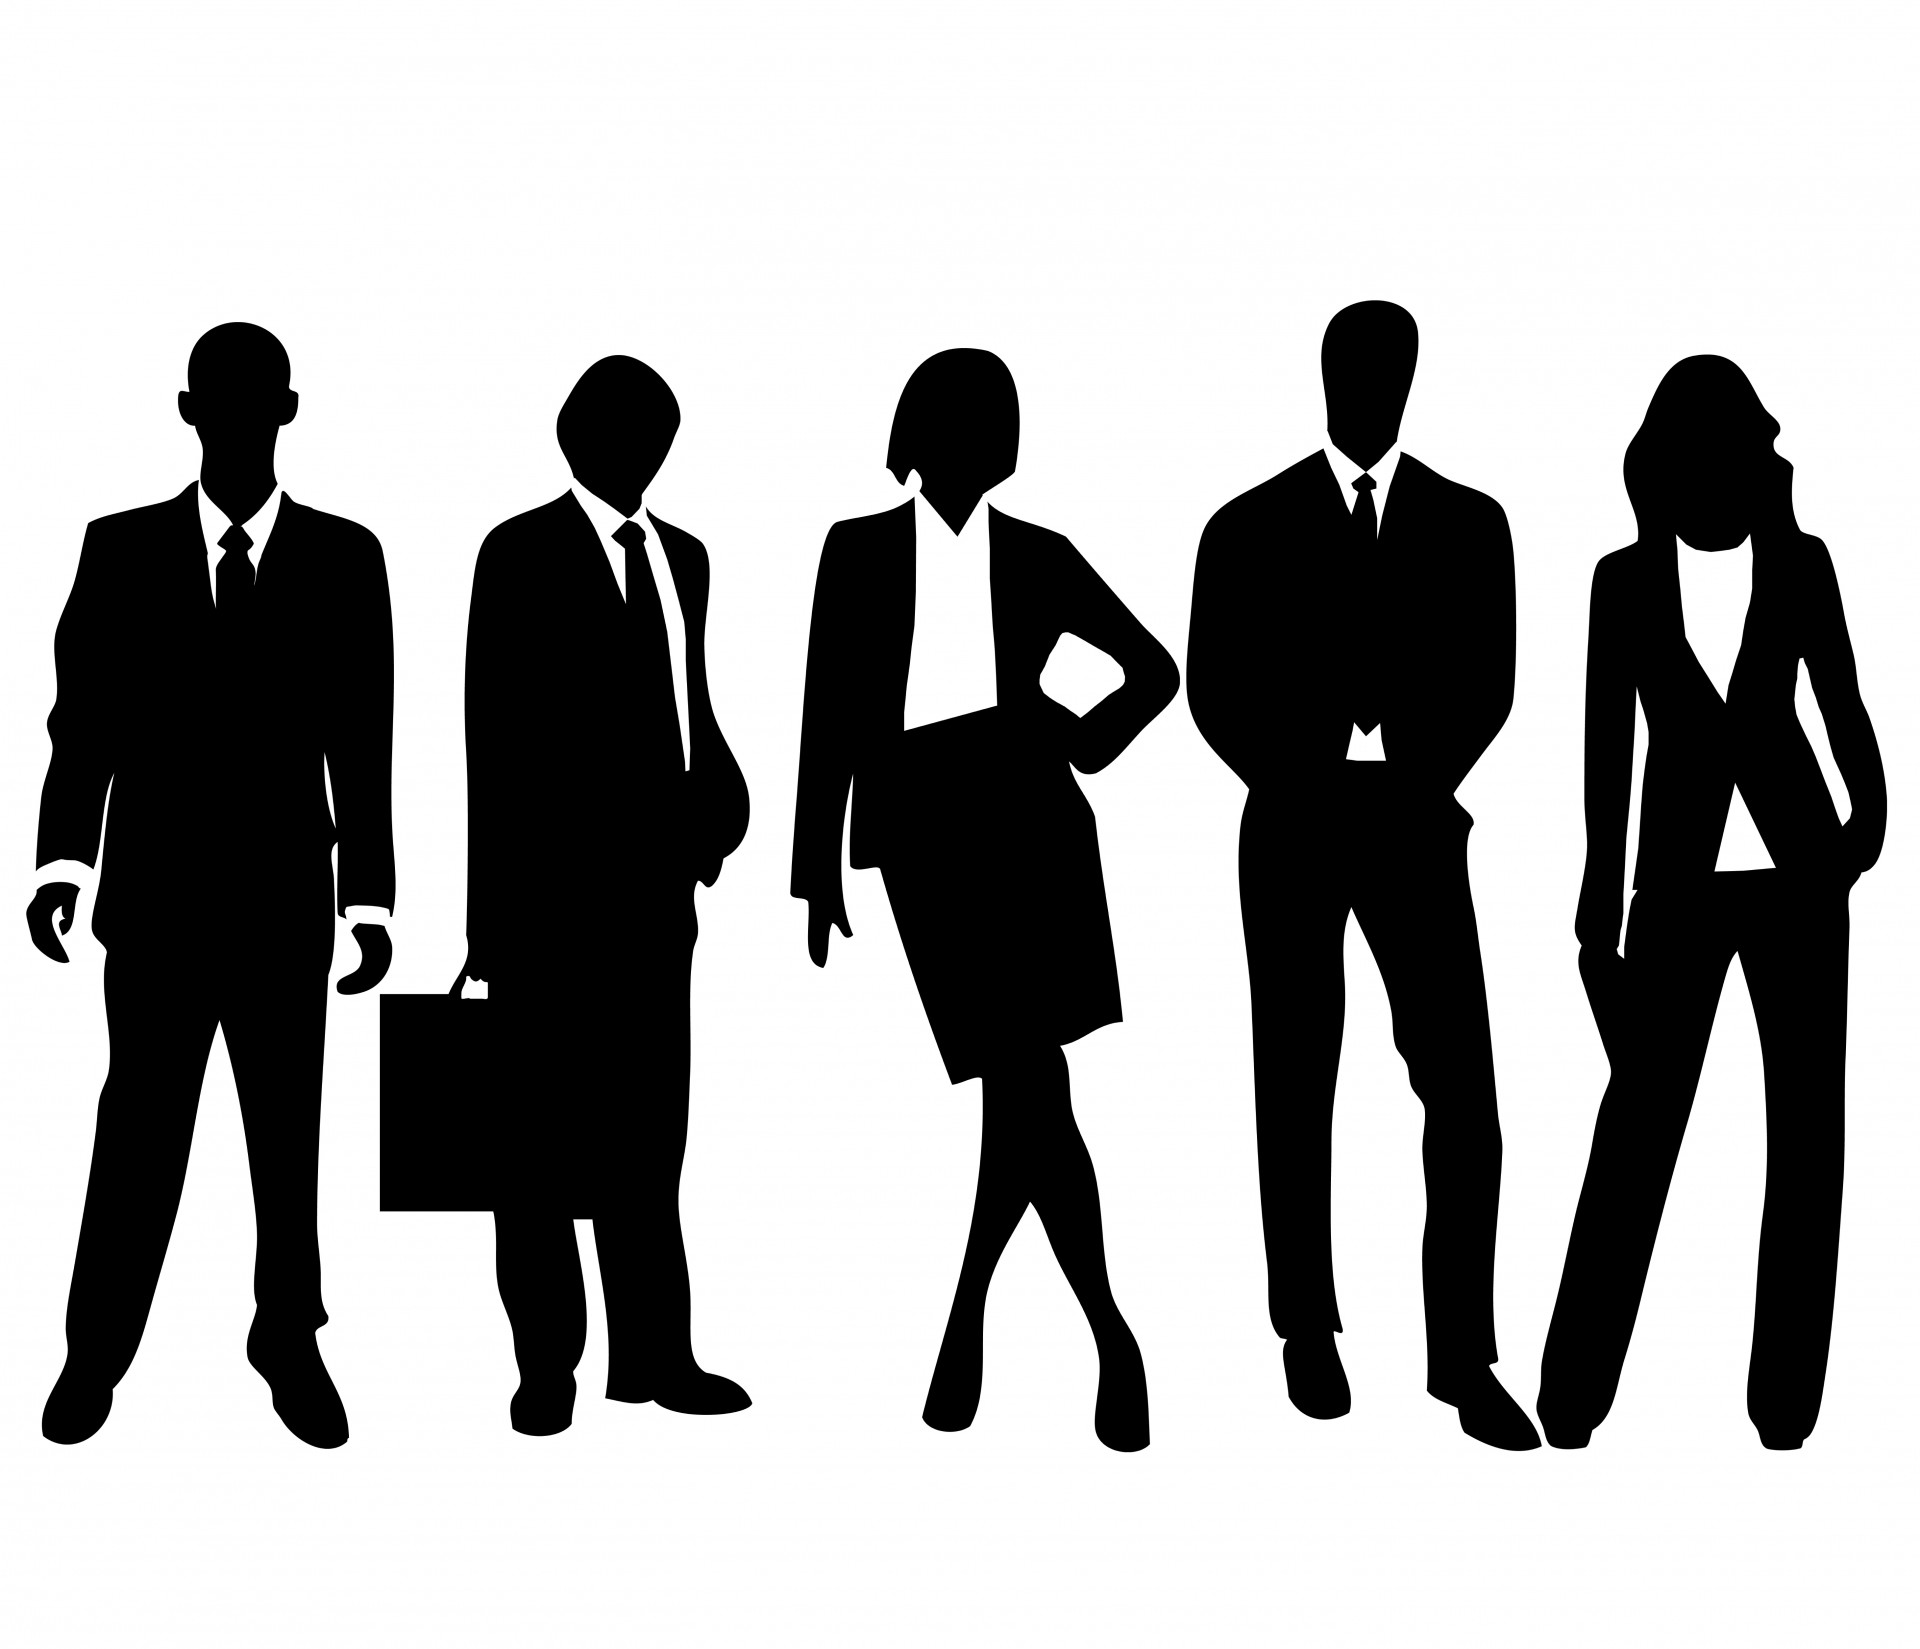 Male clipart corporate man. Business people group free